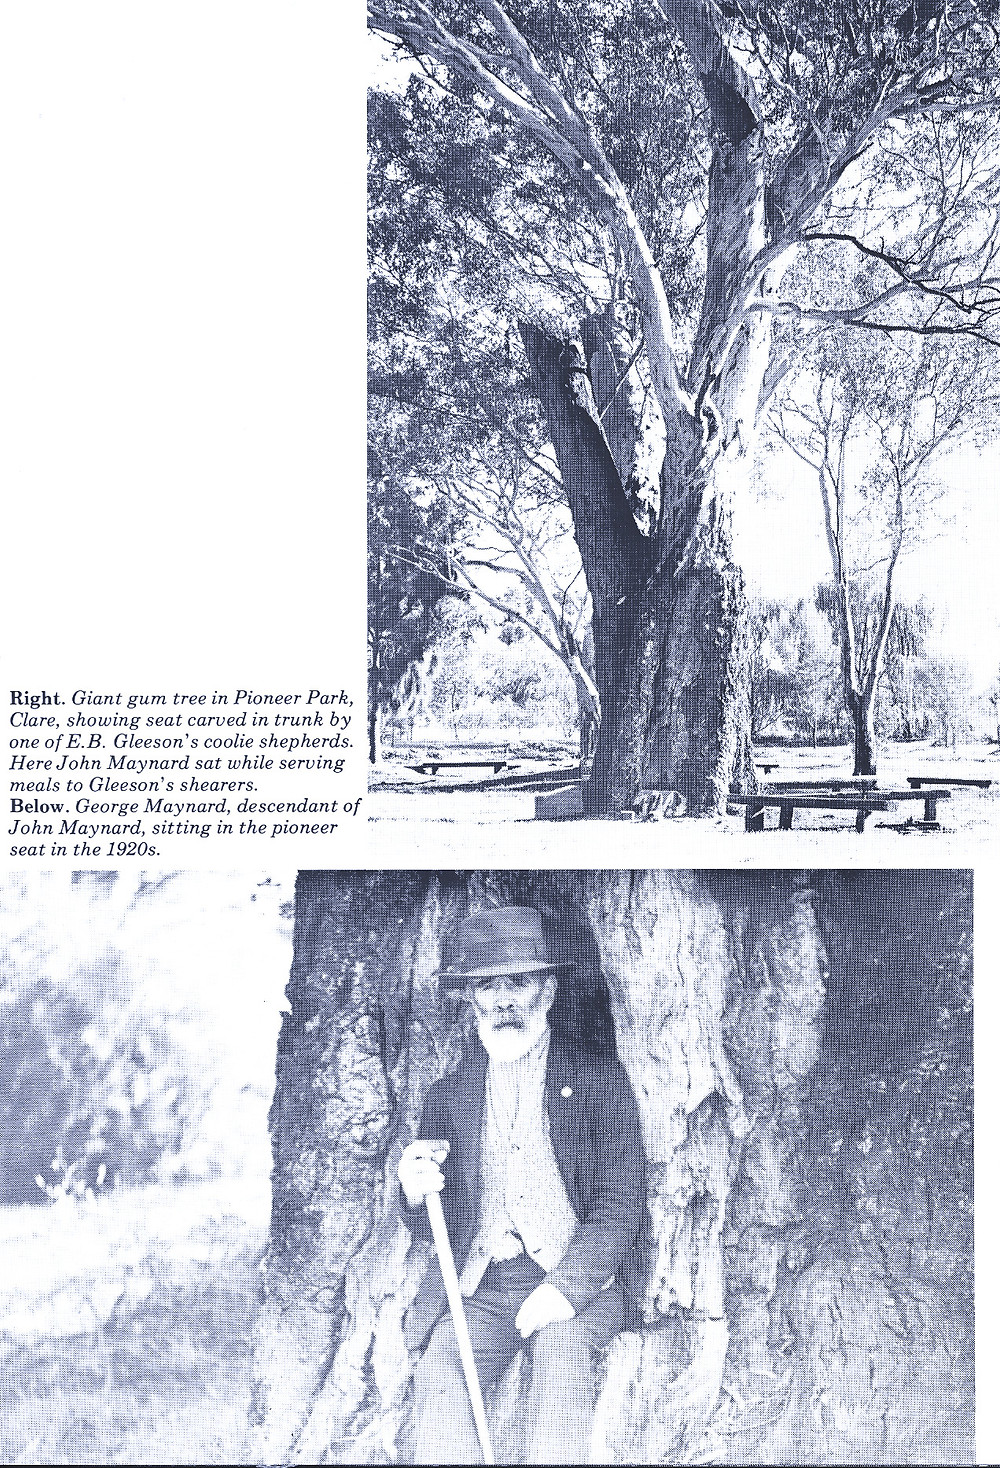 The old gum tree in Pioneer Park, Clare SA